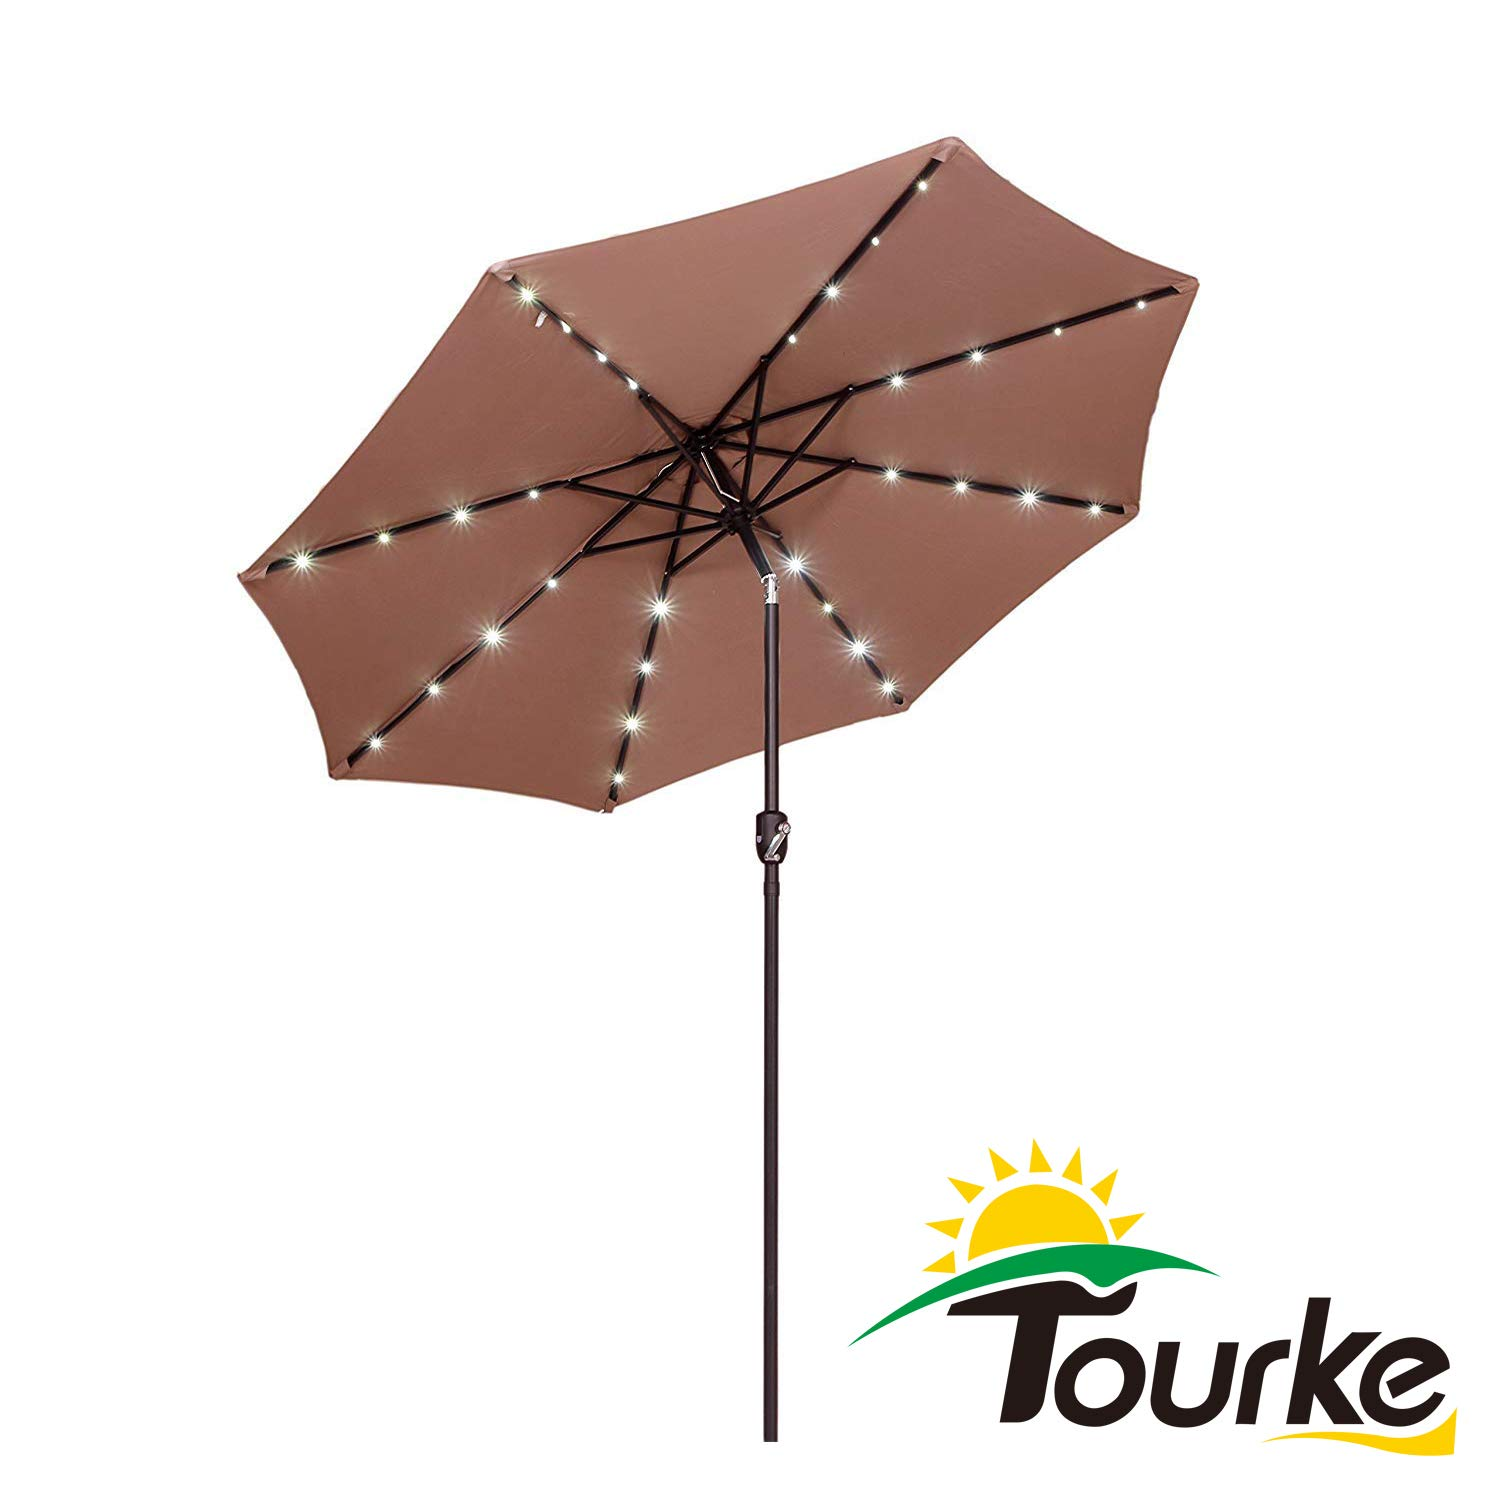 Tourke 9 Ft Led Lighted Patio Table Umbrella Outdoor Umbrella with Push Button Tilt and Crank, 8 Steel Ribs, for Garden, Deck, Backyard, Swimming Pool and More Taupe